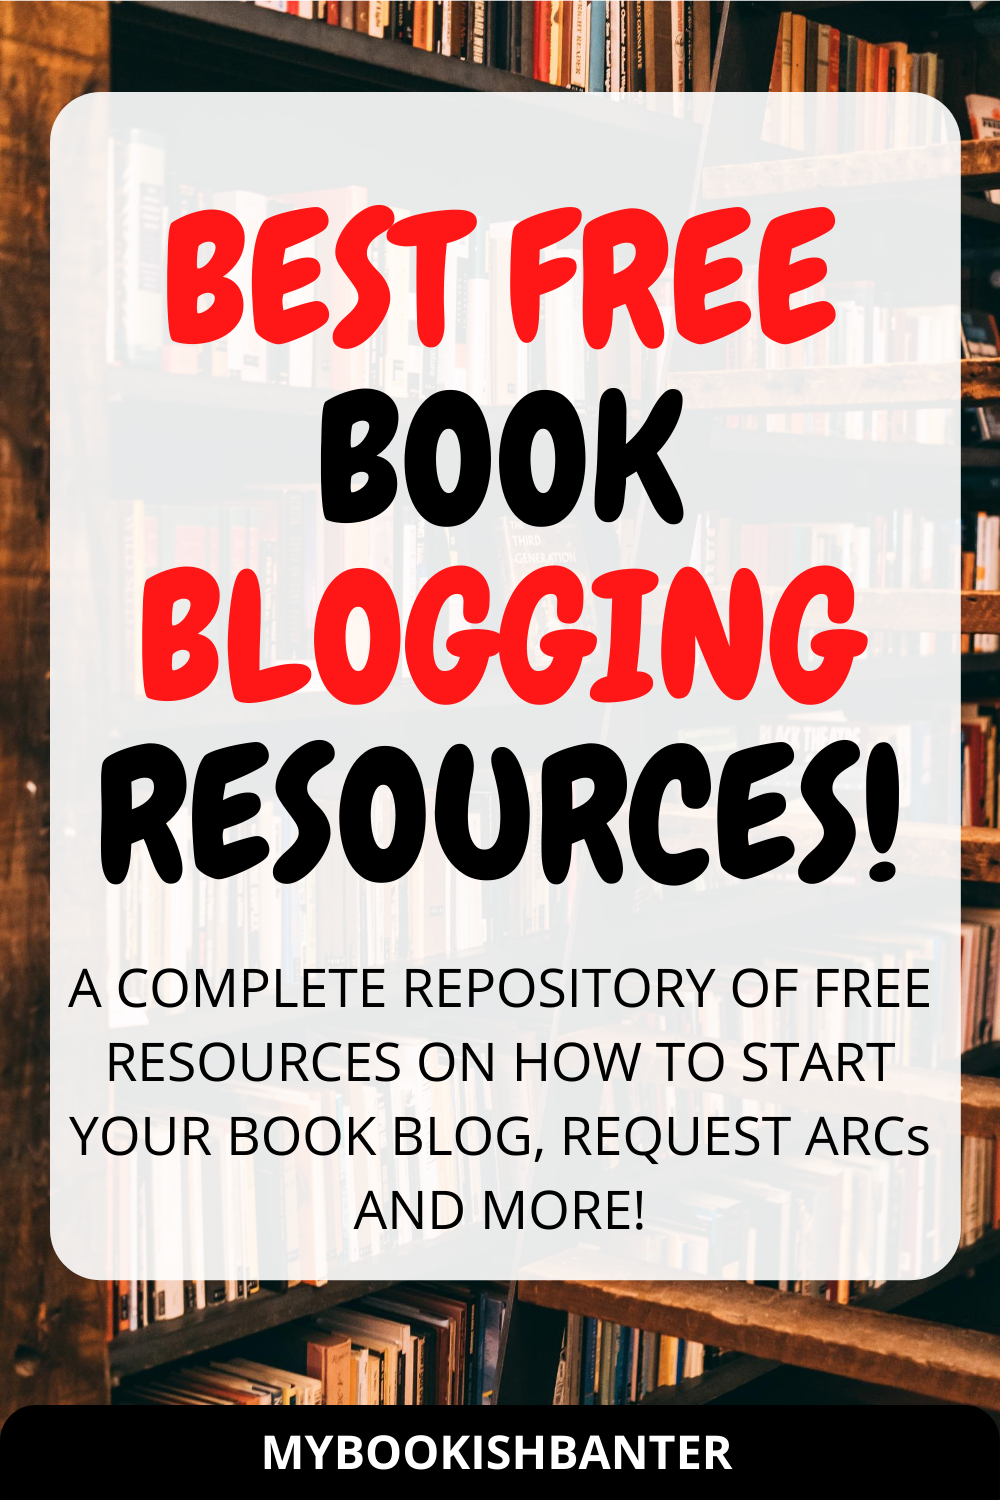 a2406f005e9161a317fd748c11913e37 - How To Get Free Books To Review On Your Blog